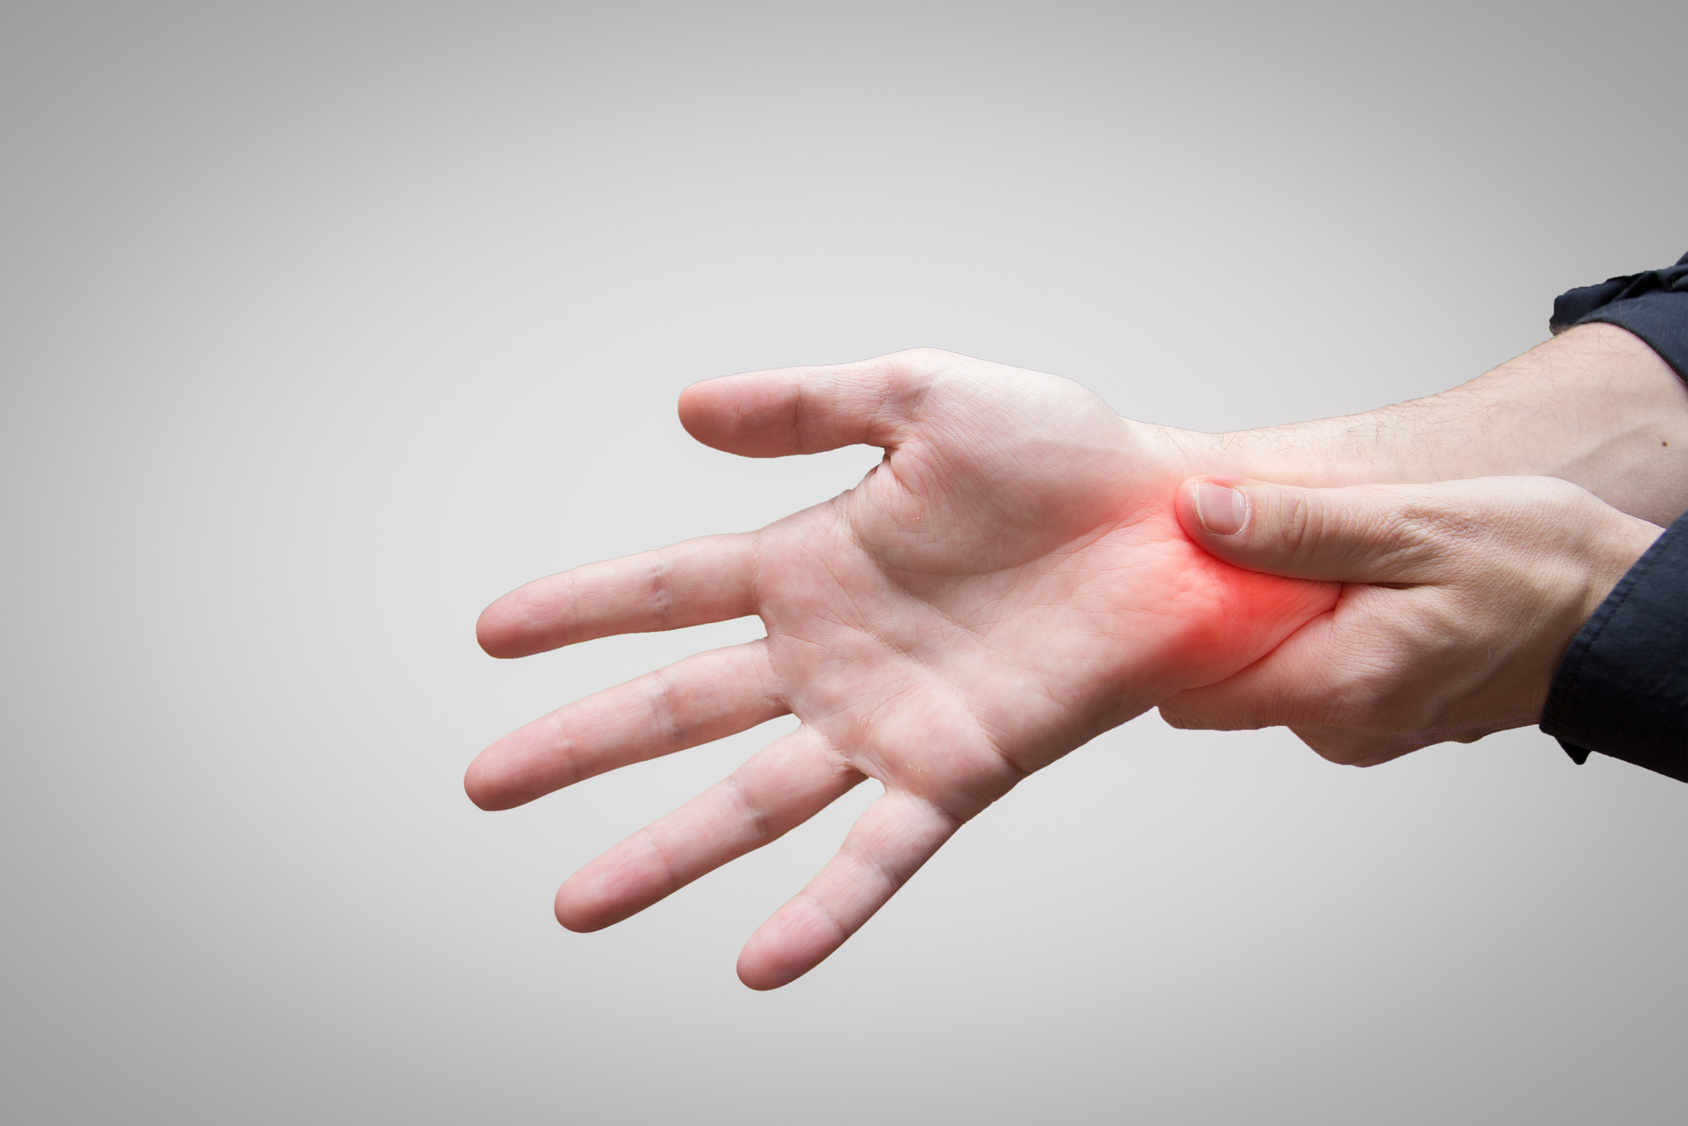 Demystifying Carpal Tunnel Syndrome